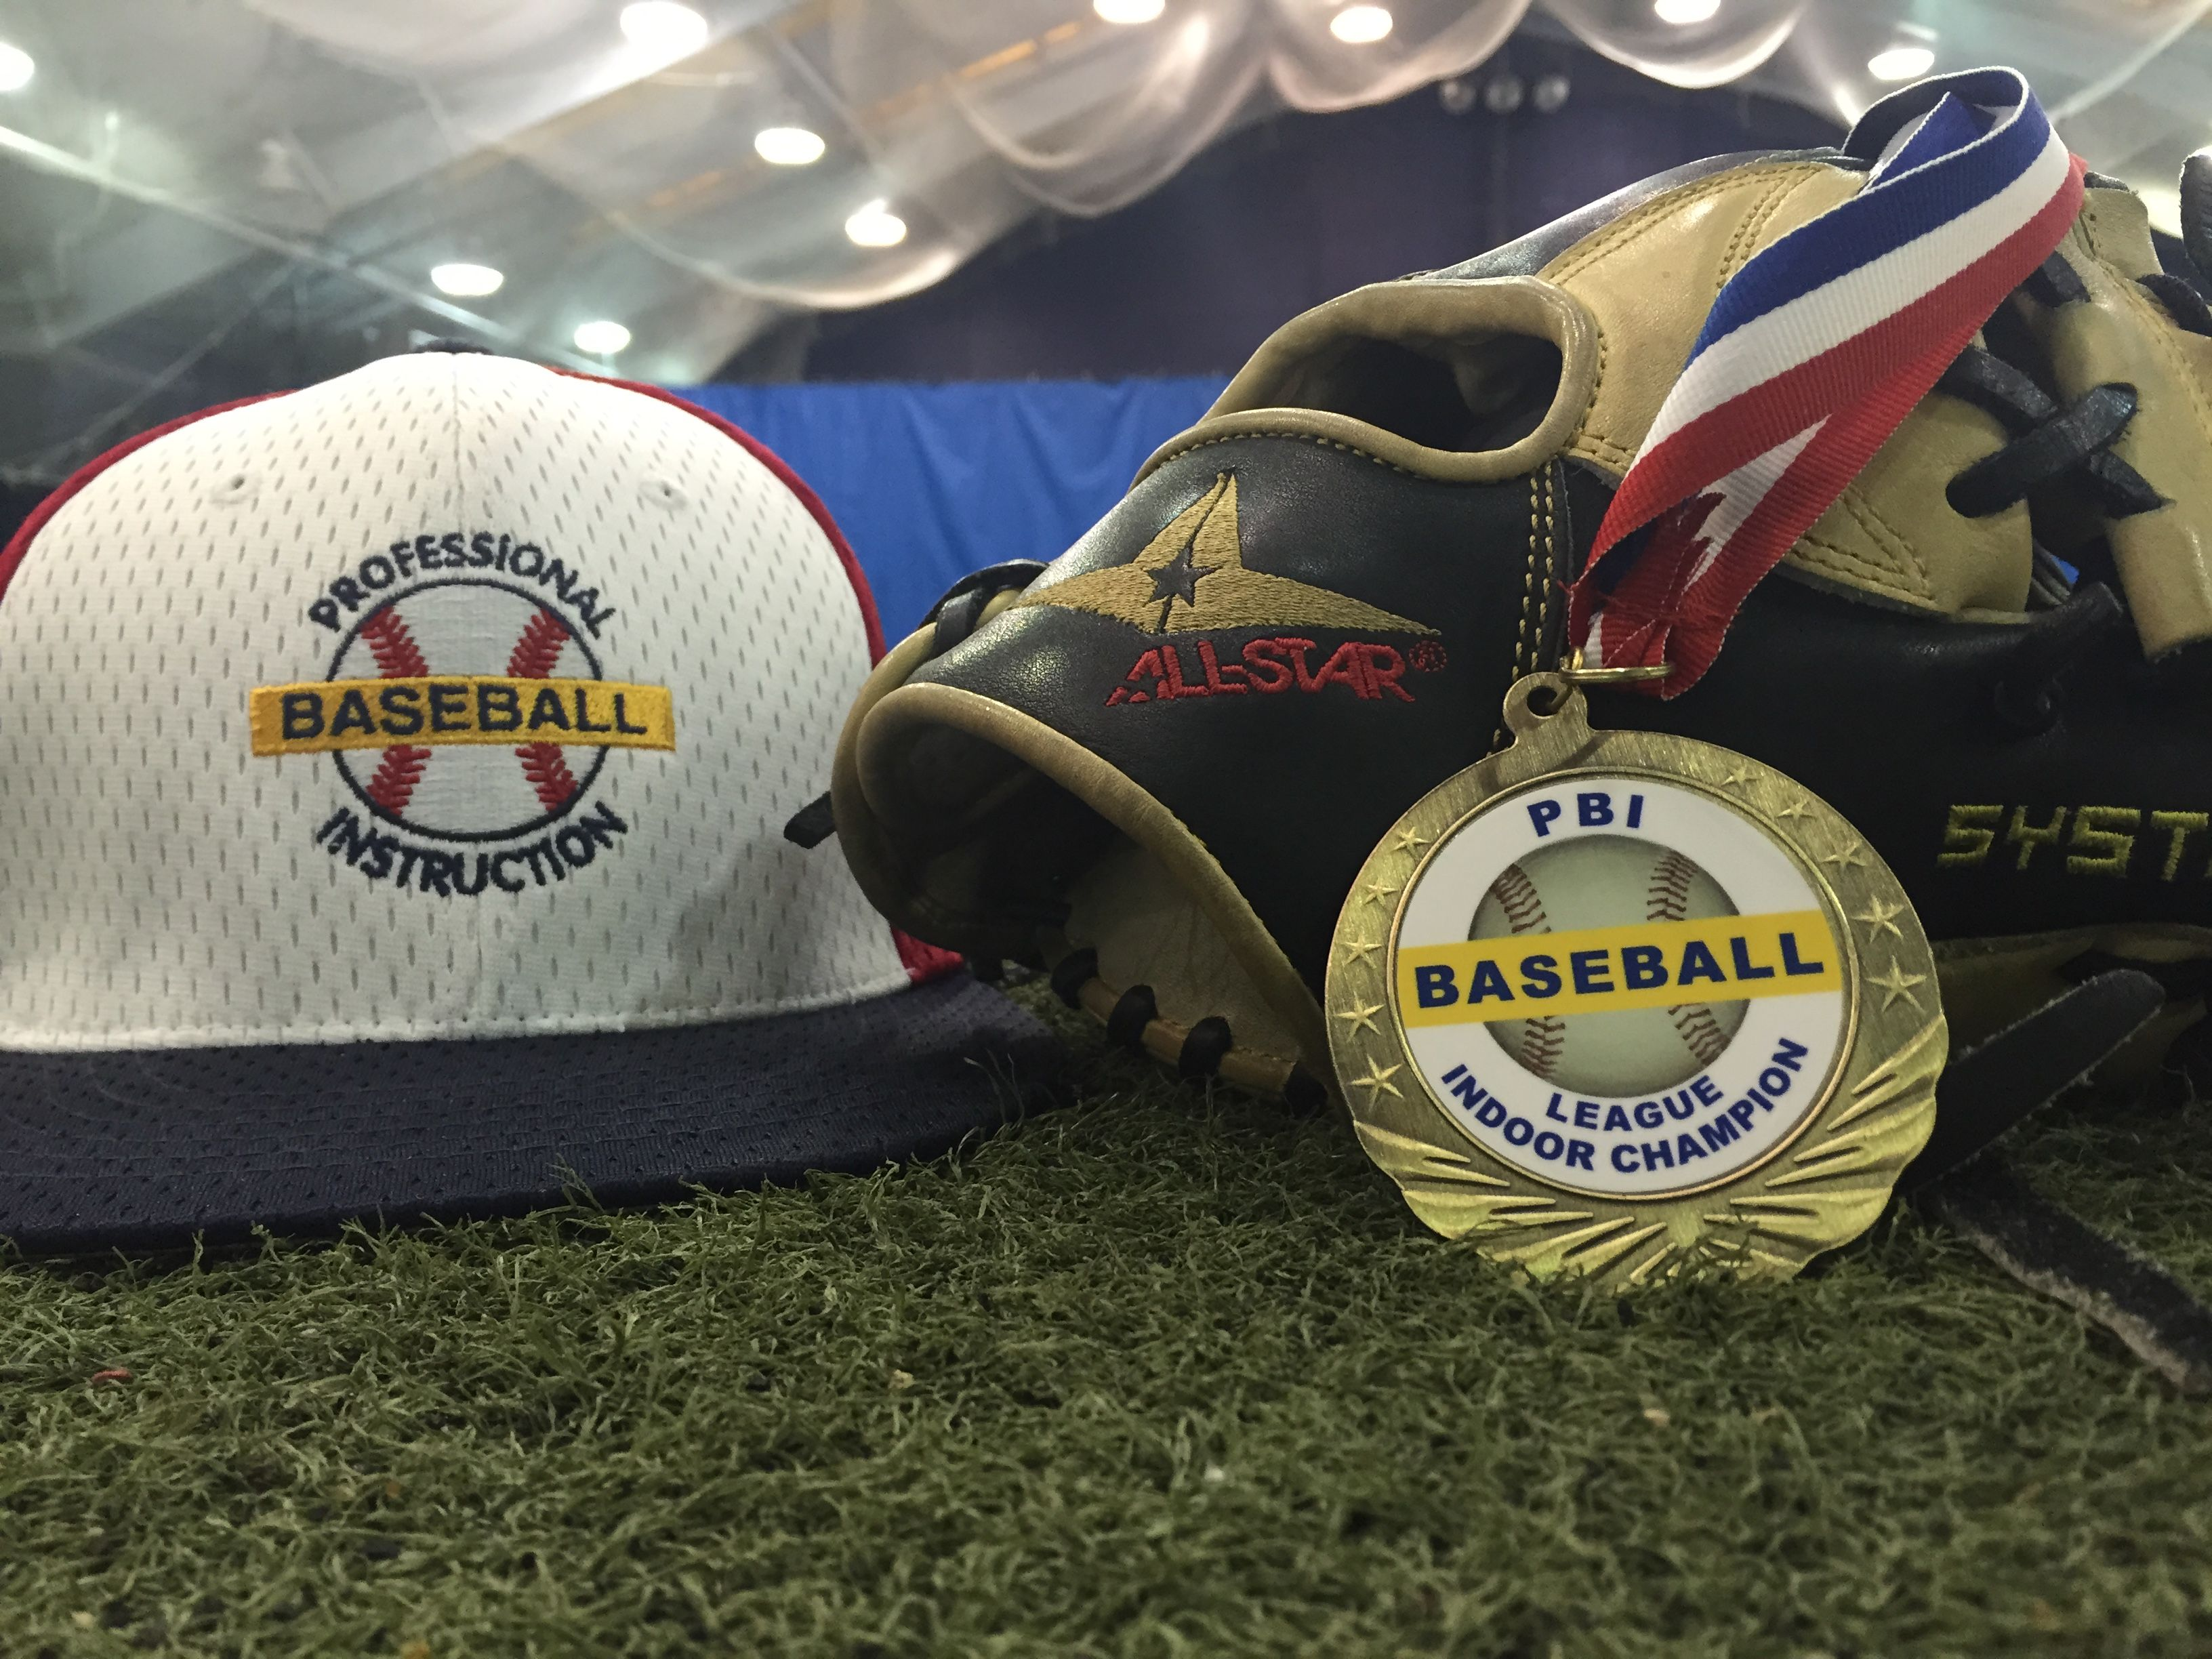 The Pbi League 2014 2015 Indoor Season Championship Games Are This Sunday 9 10u Division Championship 2 Hhb Rookies Baseball League Championship Game League